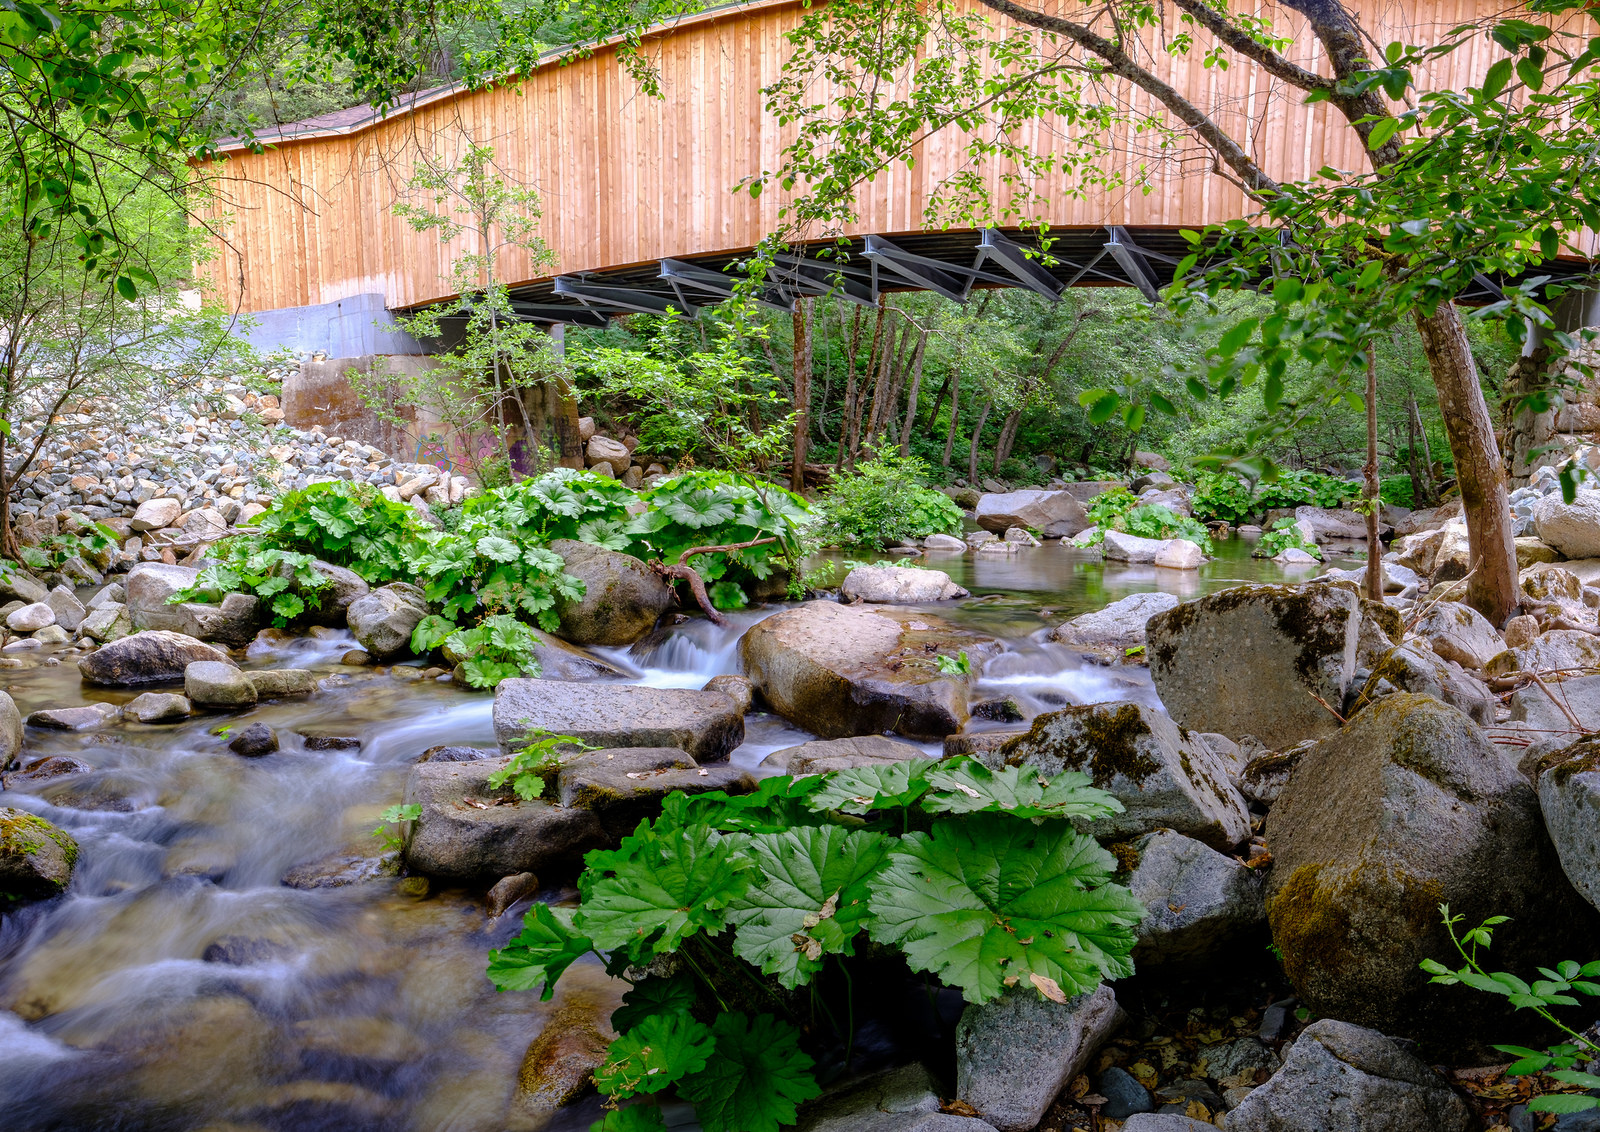 This is a panorama made up of 5 images. Because my tripod wasn't totally level, you can see a little distortion in the bridge shape.